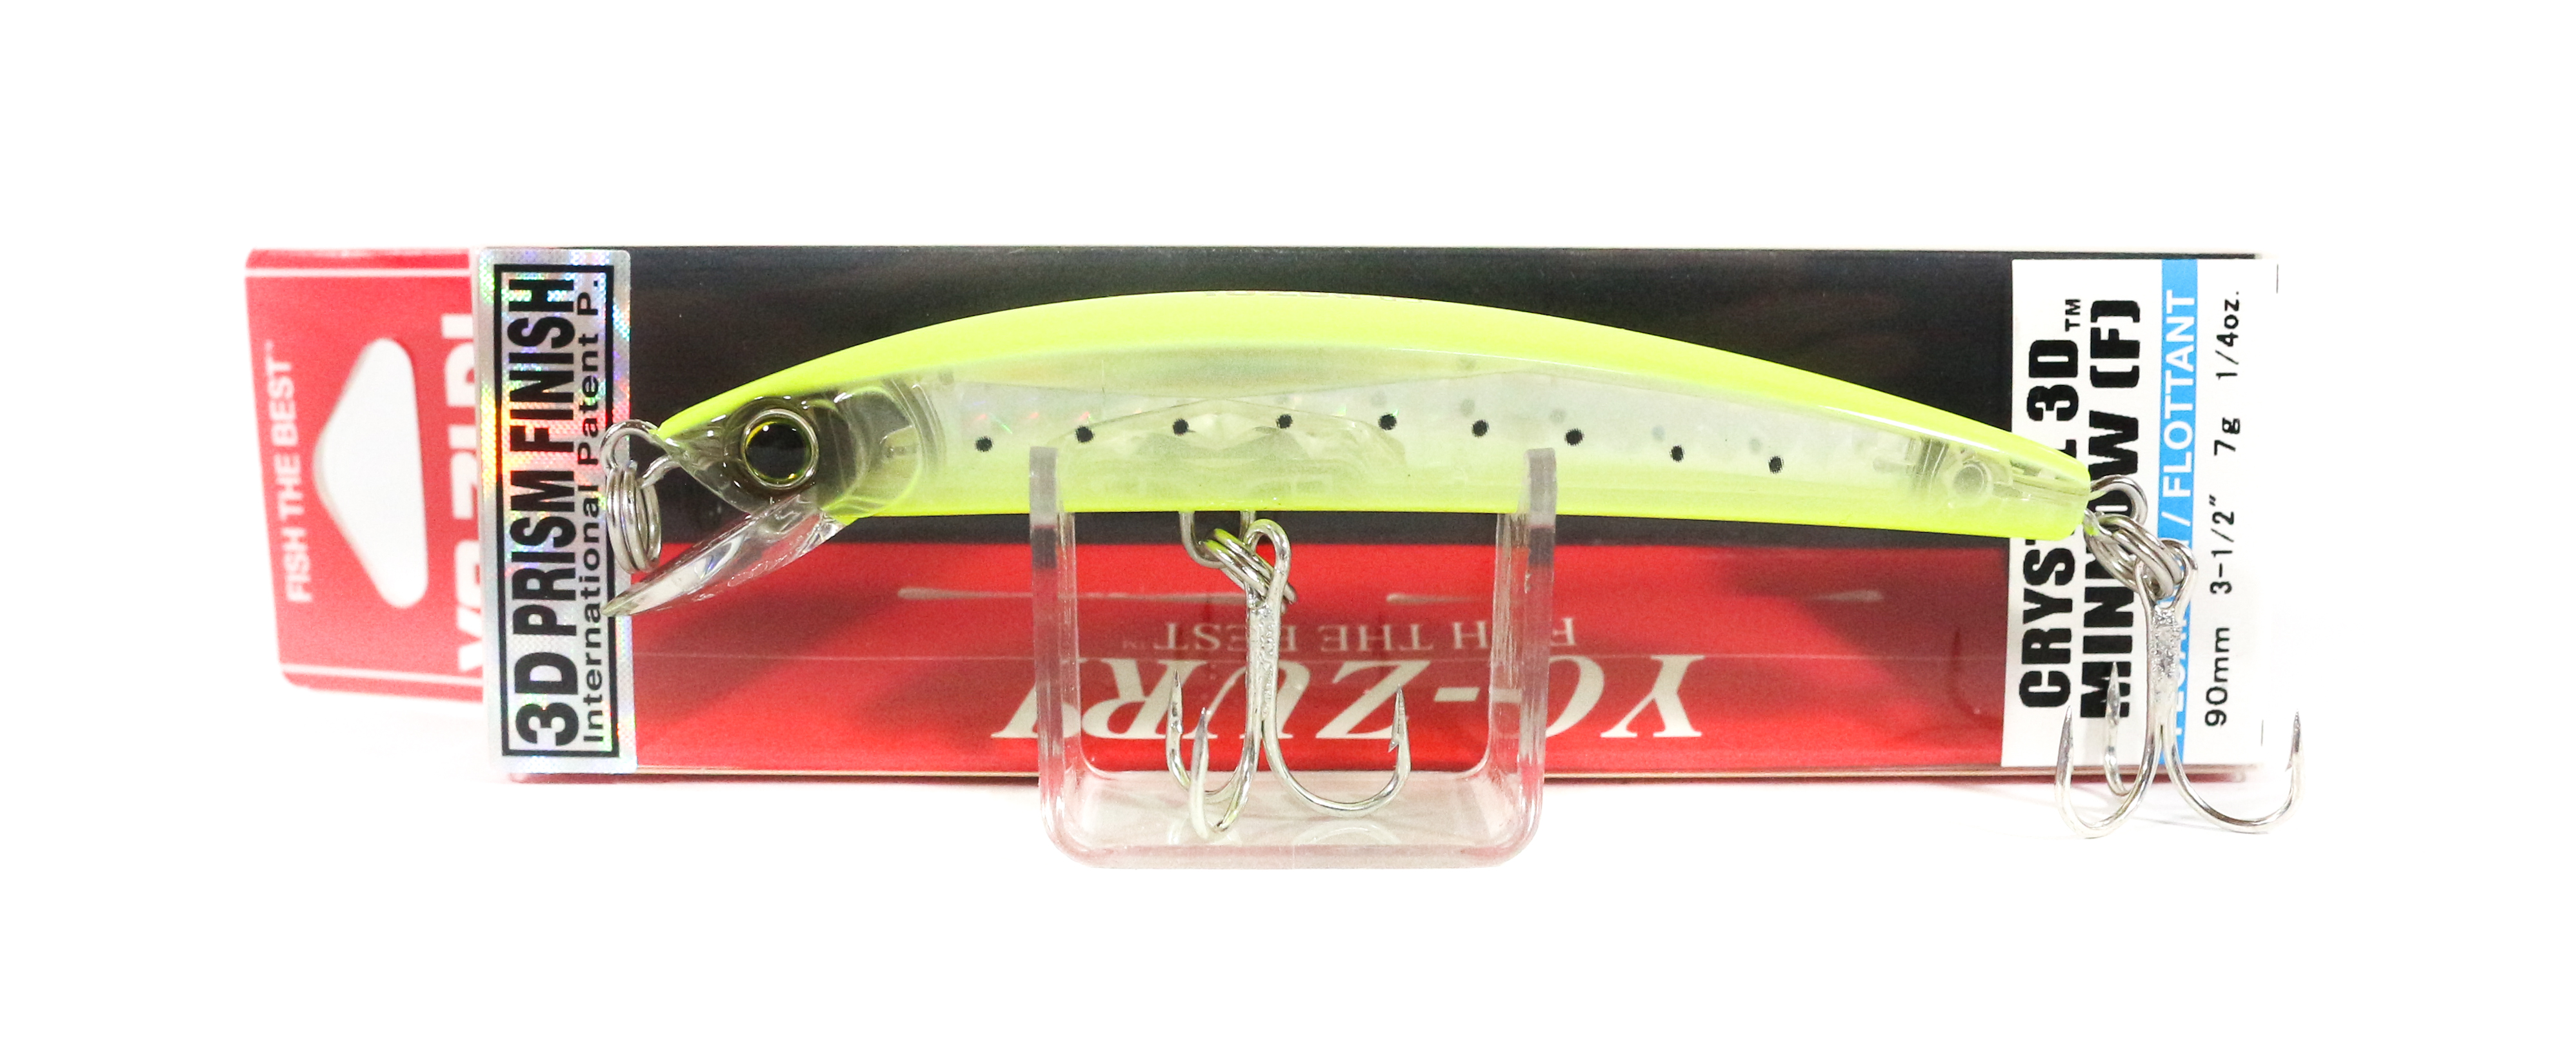 Yo Zuri 3D Crystal Minnow 90 mm Floating Lure F1145-GHCS (5549)